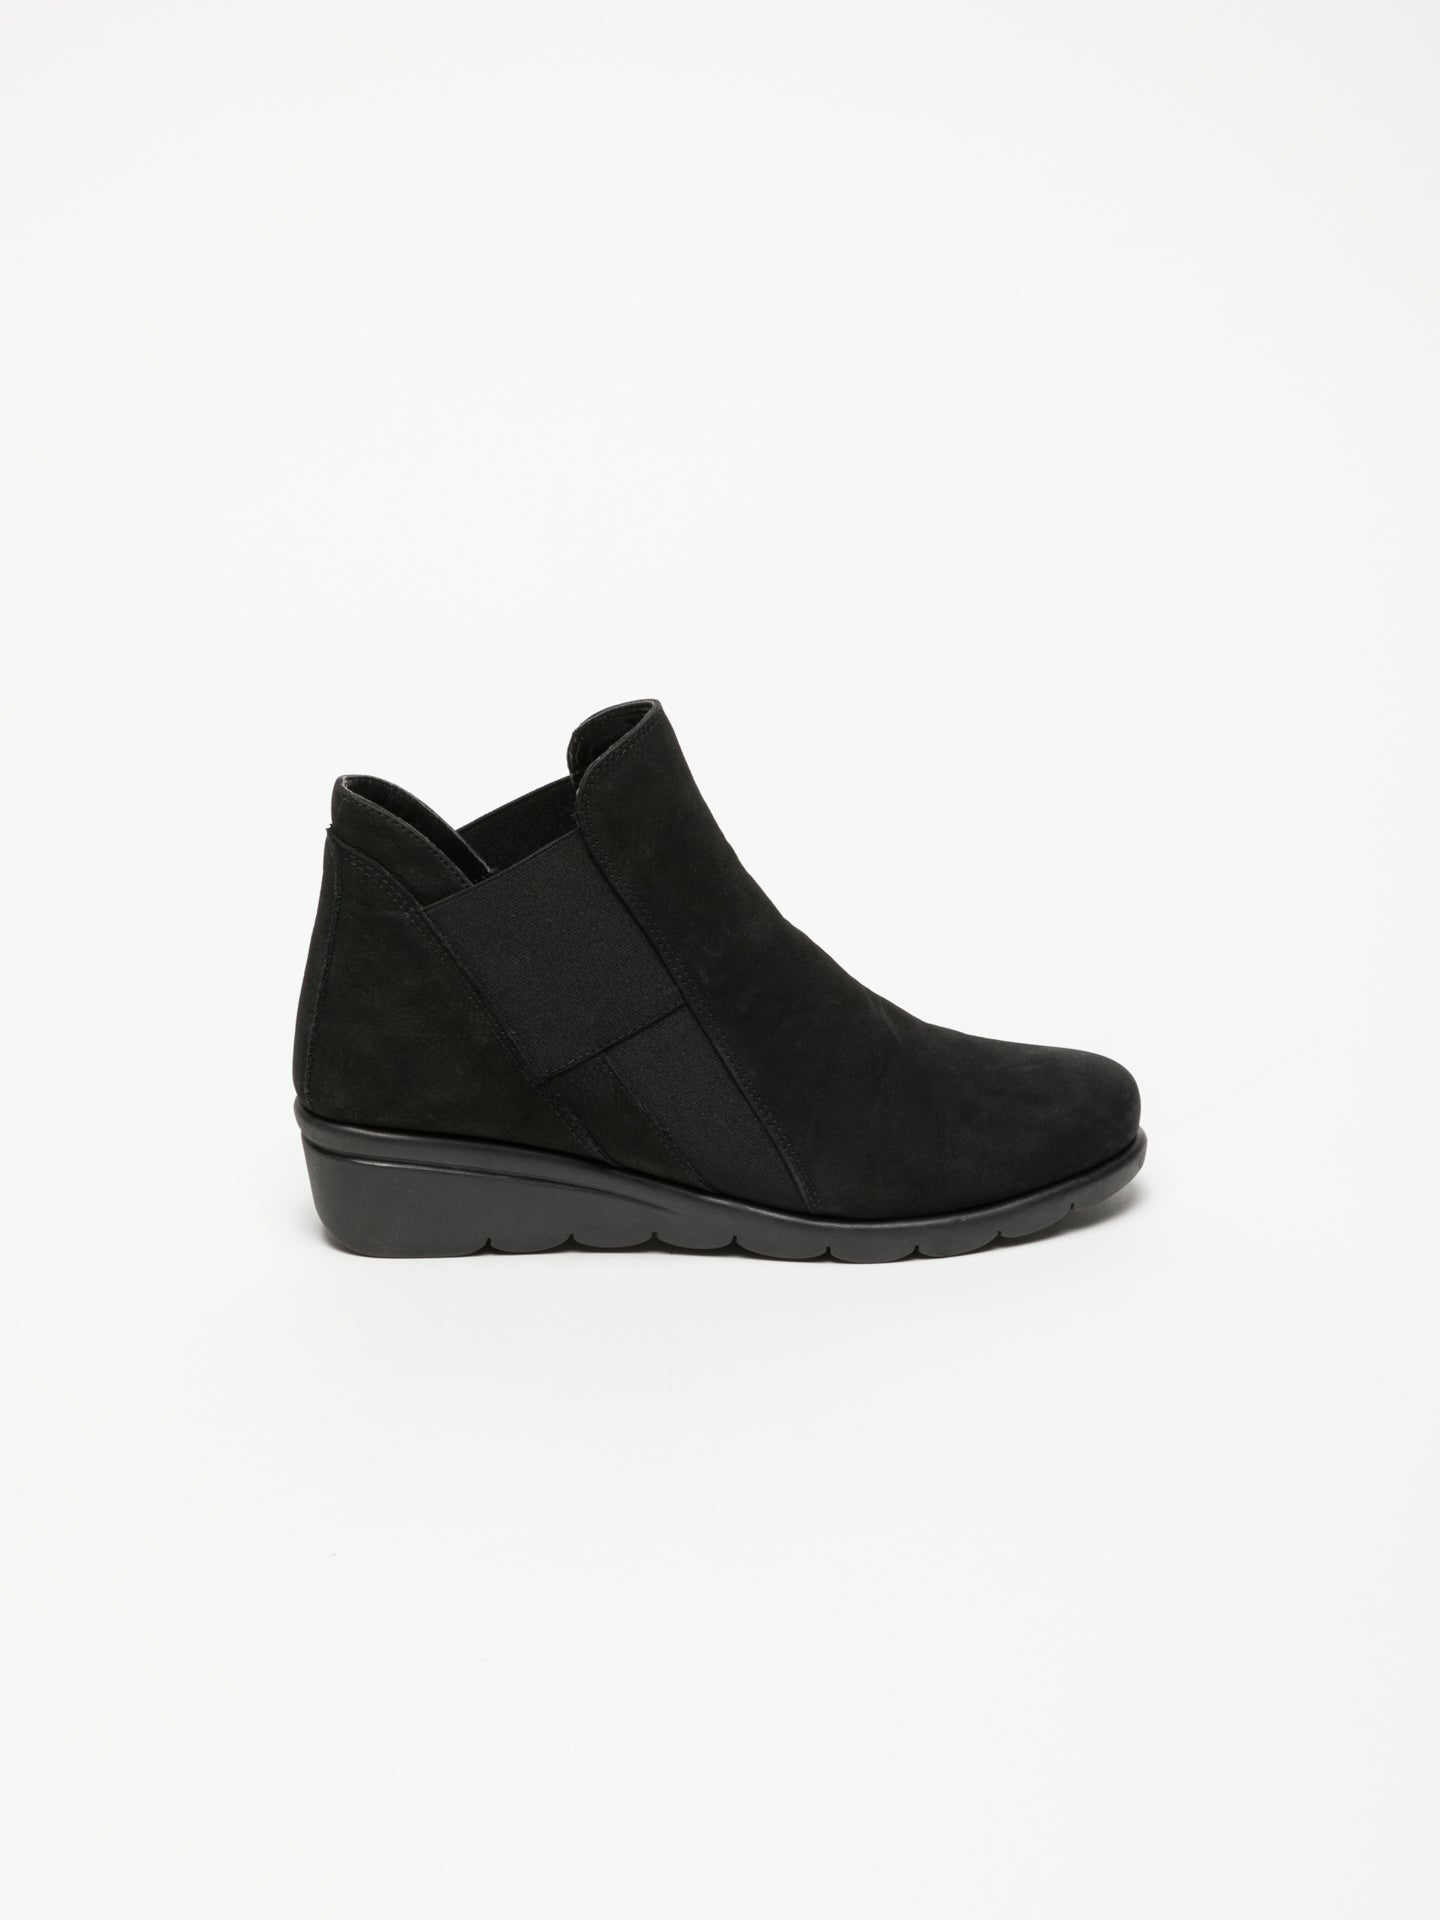 The Flexx Black Elasticated Ankle Boots